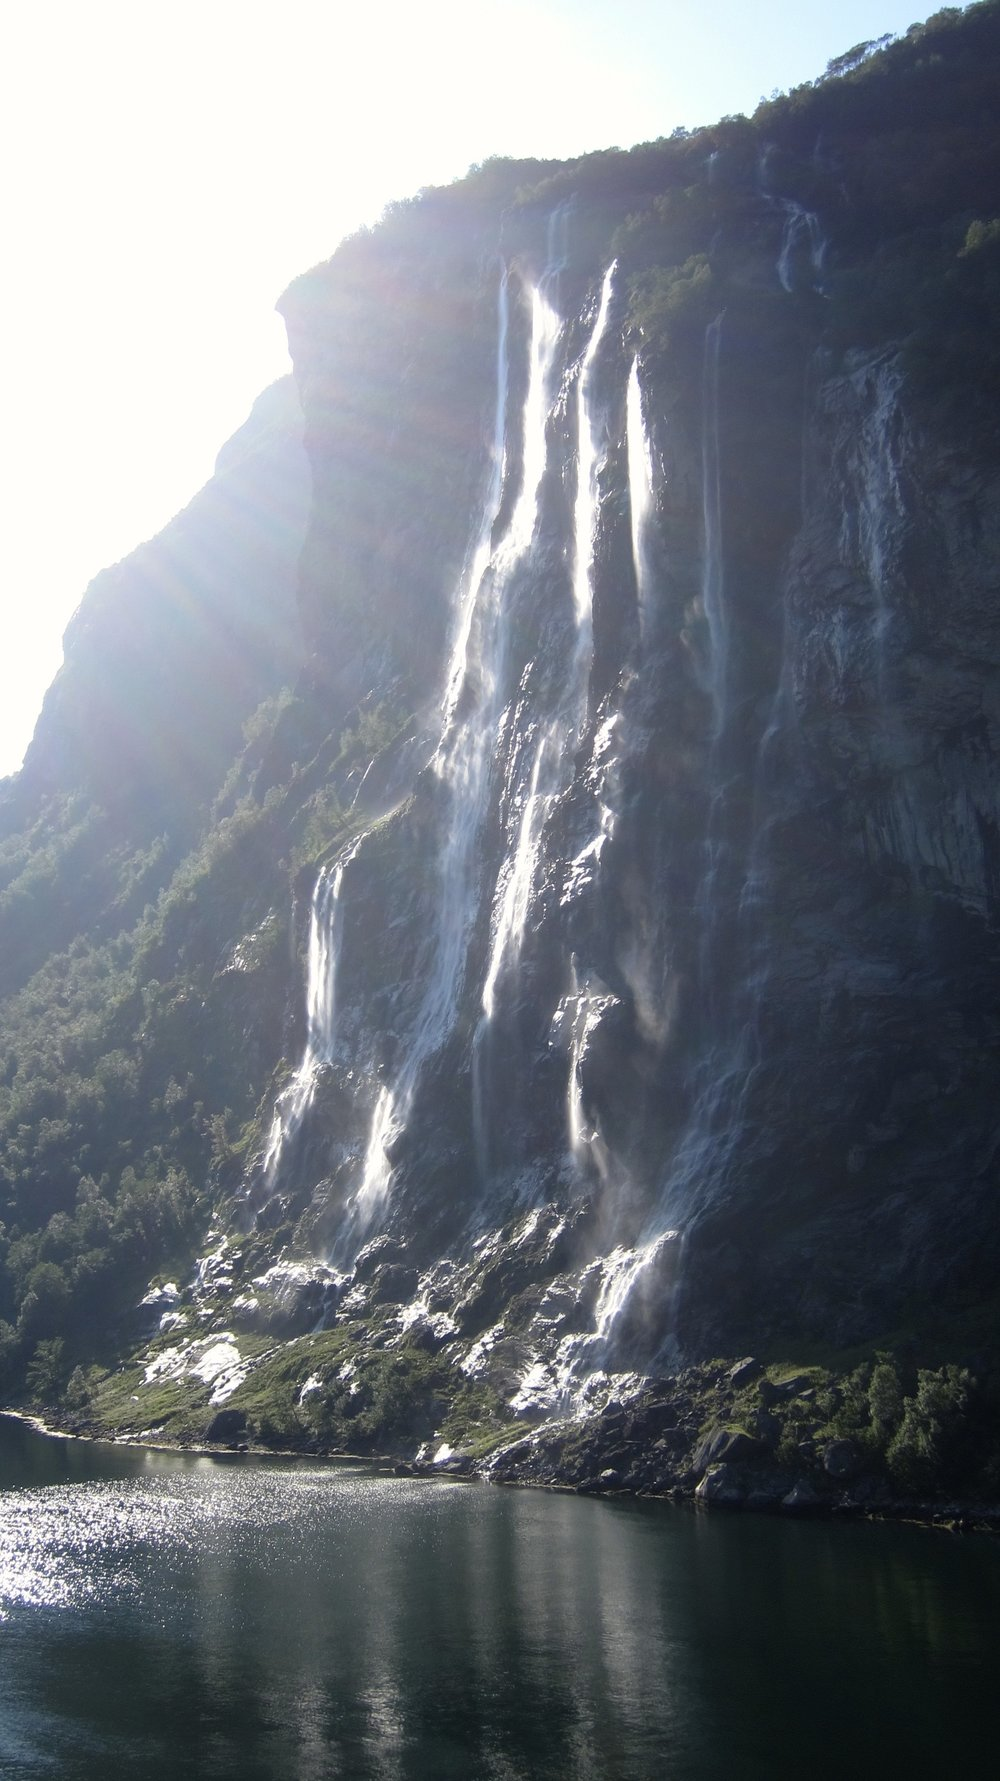 The Seven Sisters waterfall (seven rivers come together to make the fall).